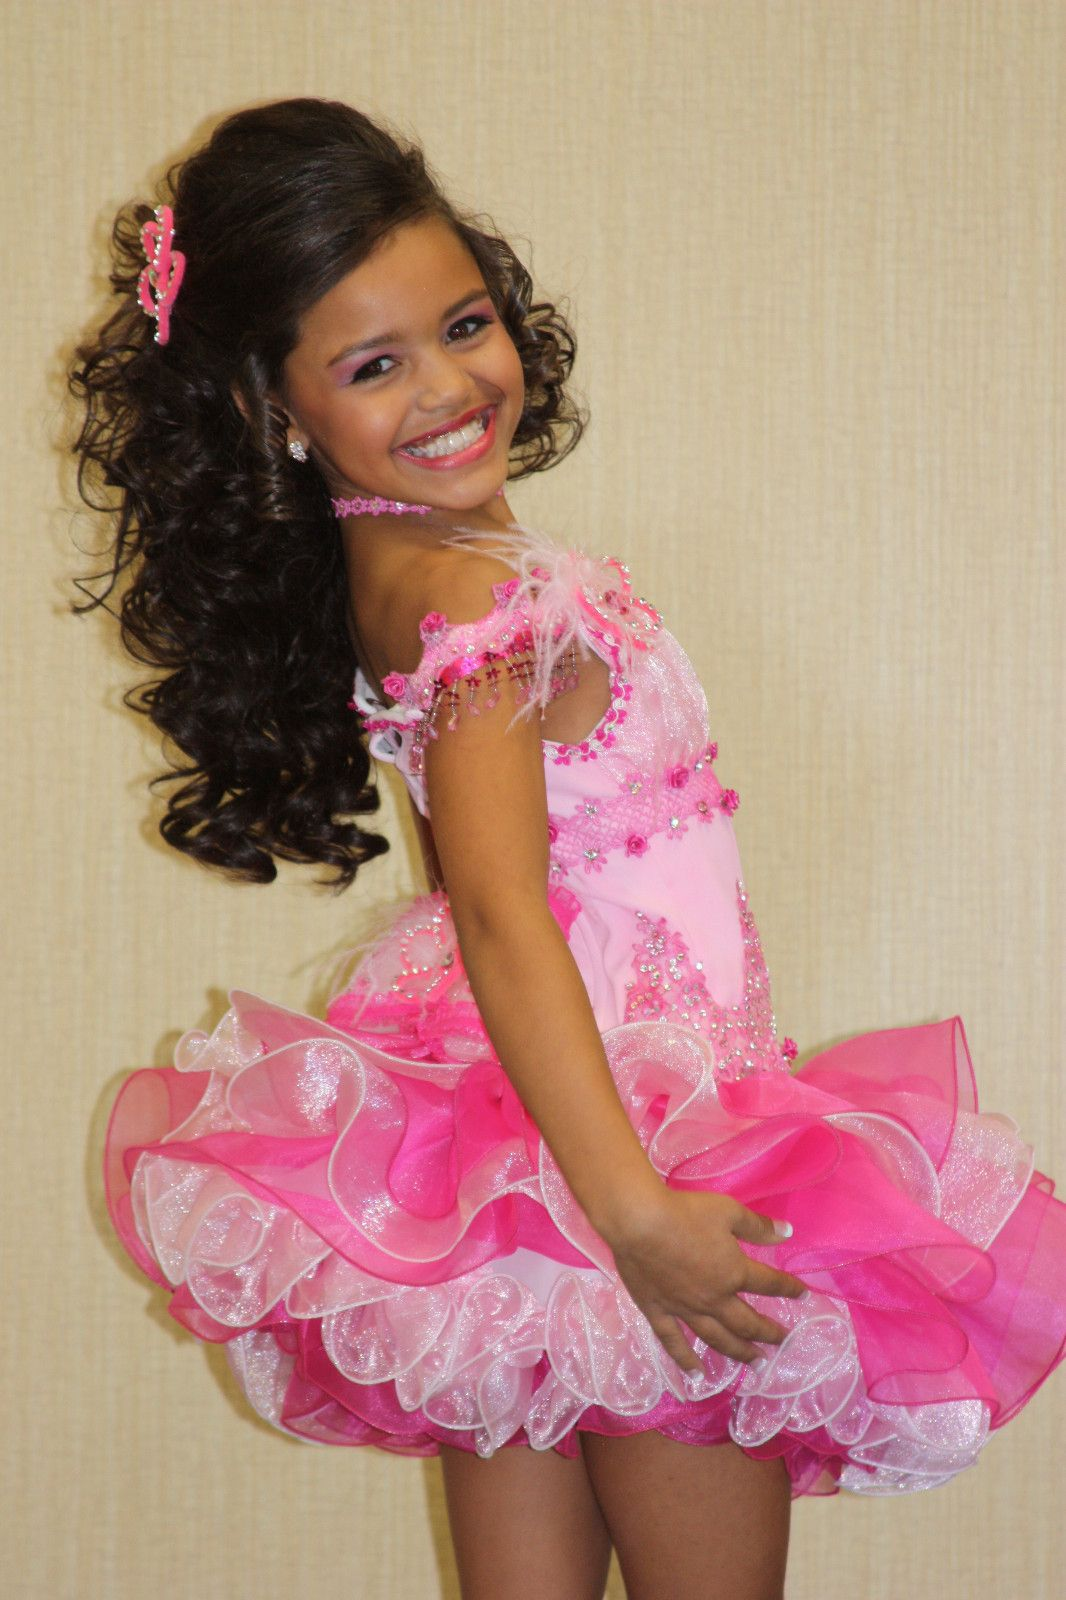 details about new!! gorgeous girls pageant bling jewel